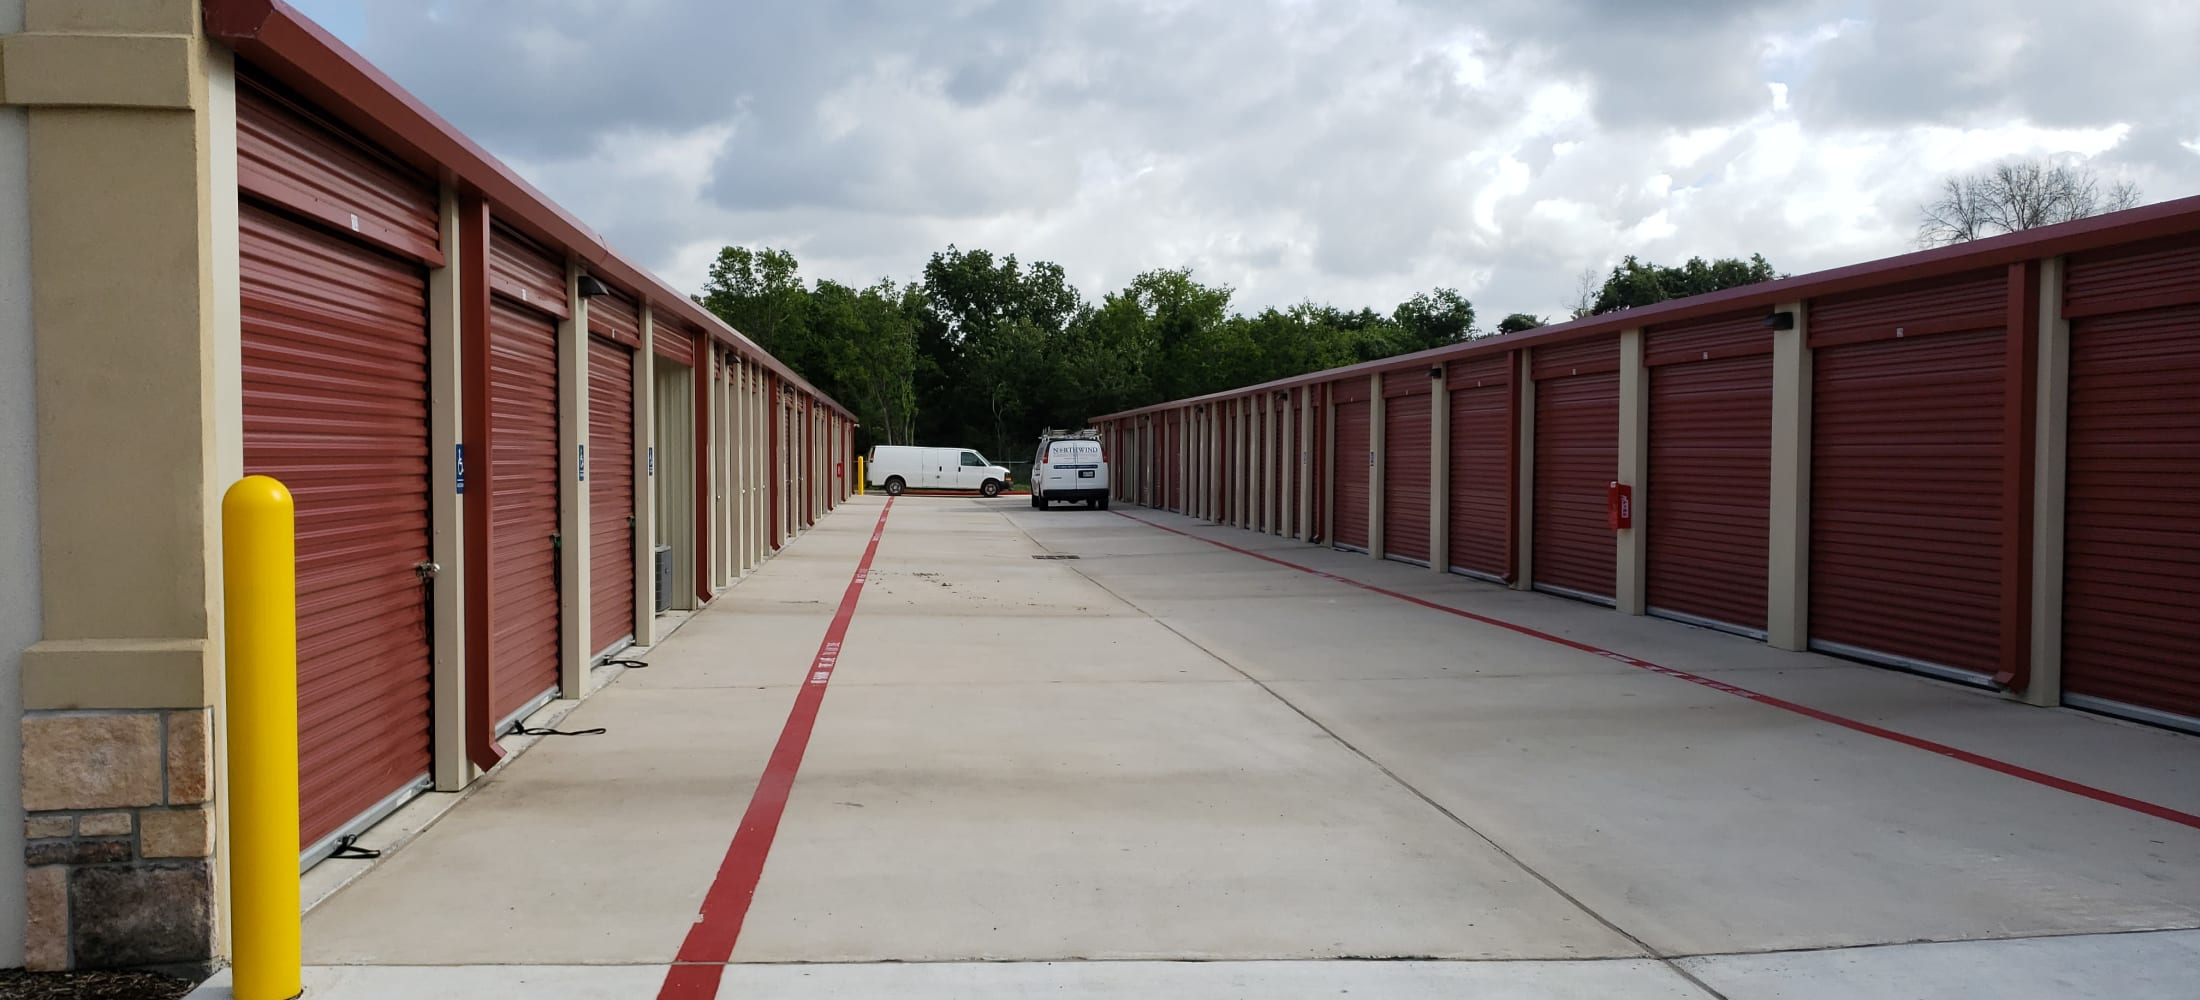 Wide driveway at Storage Authority Walters Rd in Houston, TX